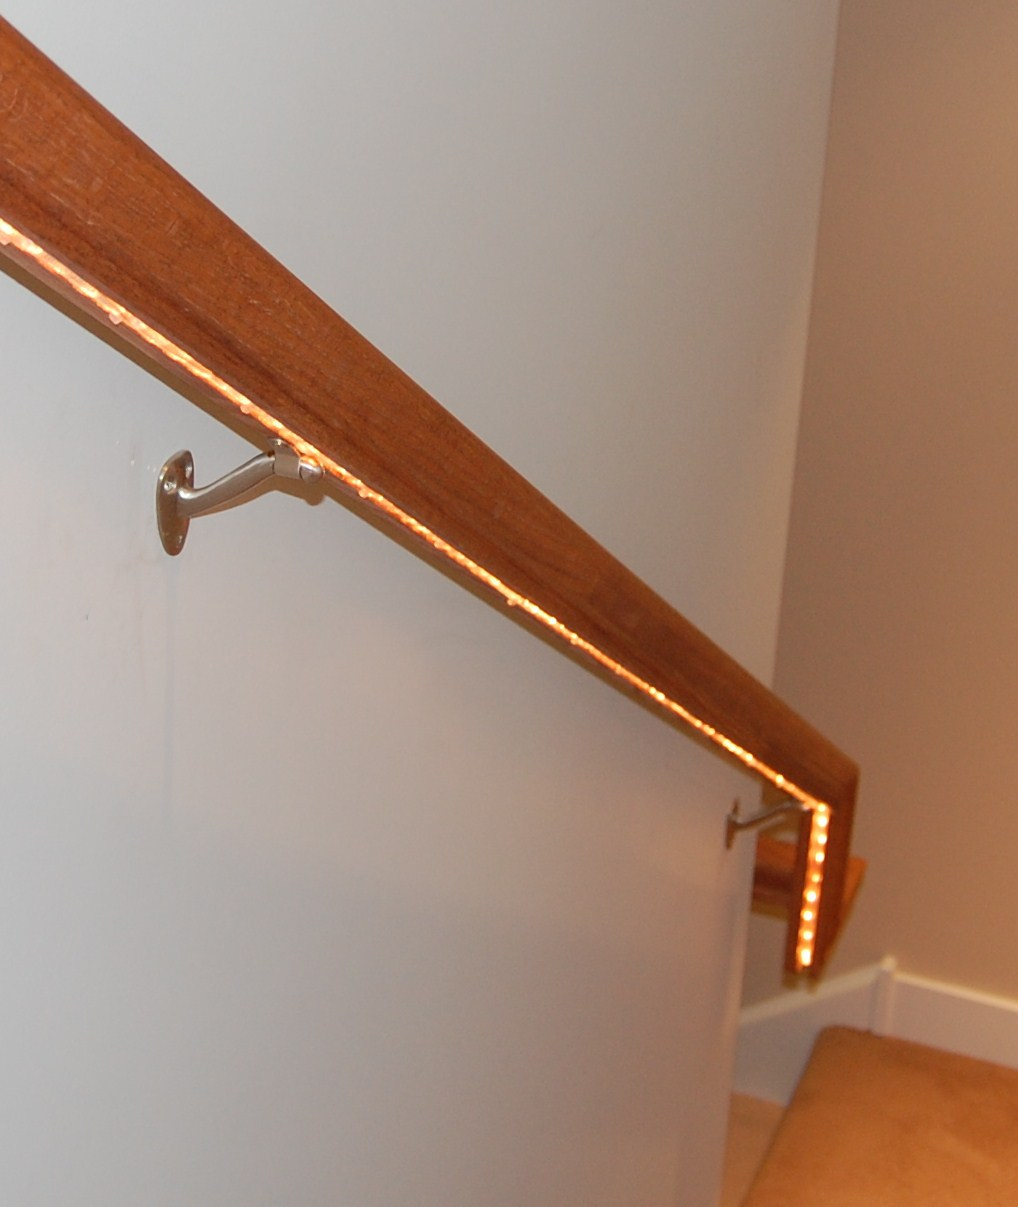 Commercial Basement Stair Lighting: Stairway Savvy